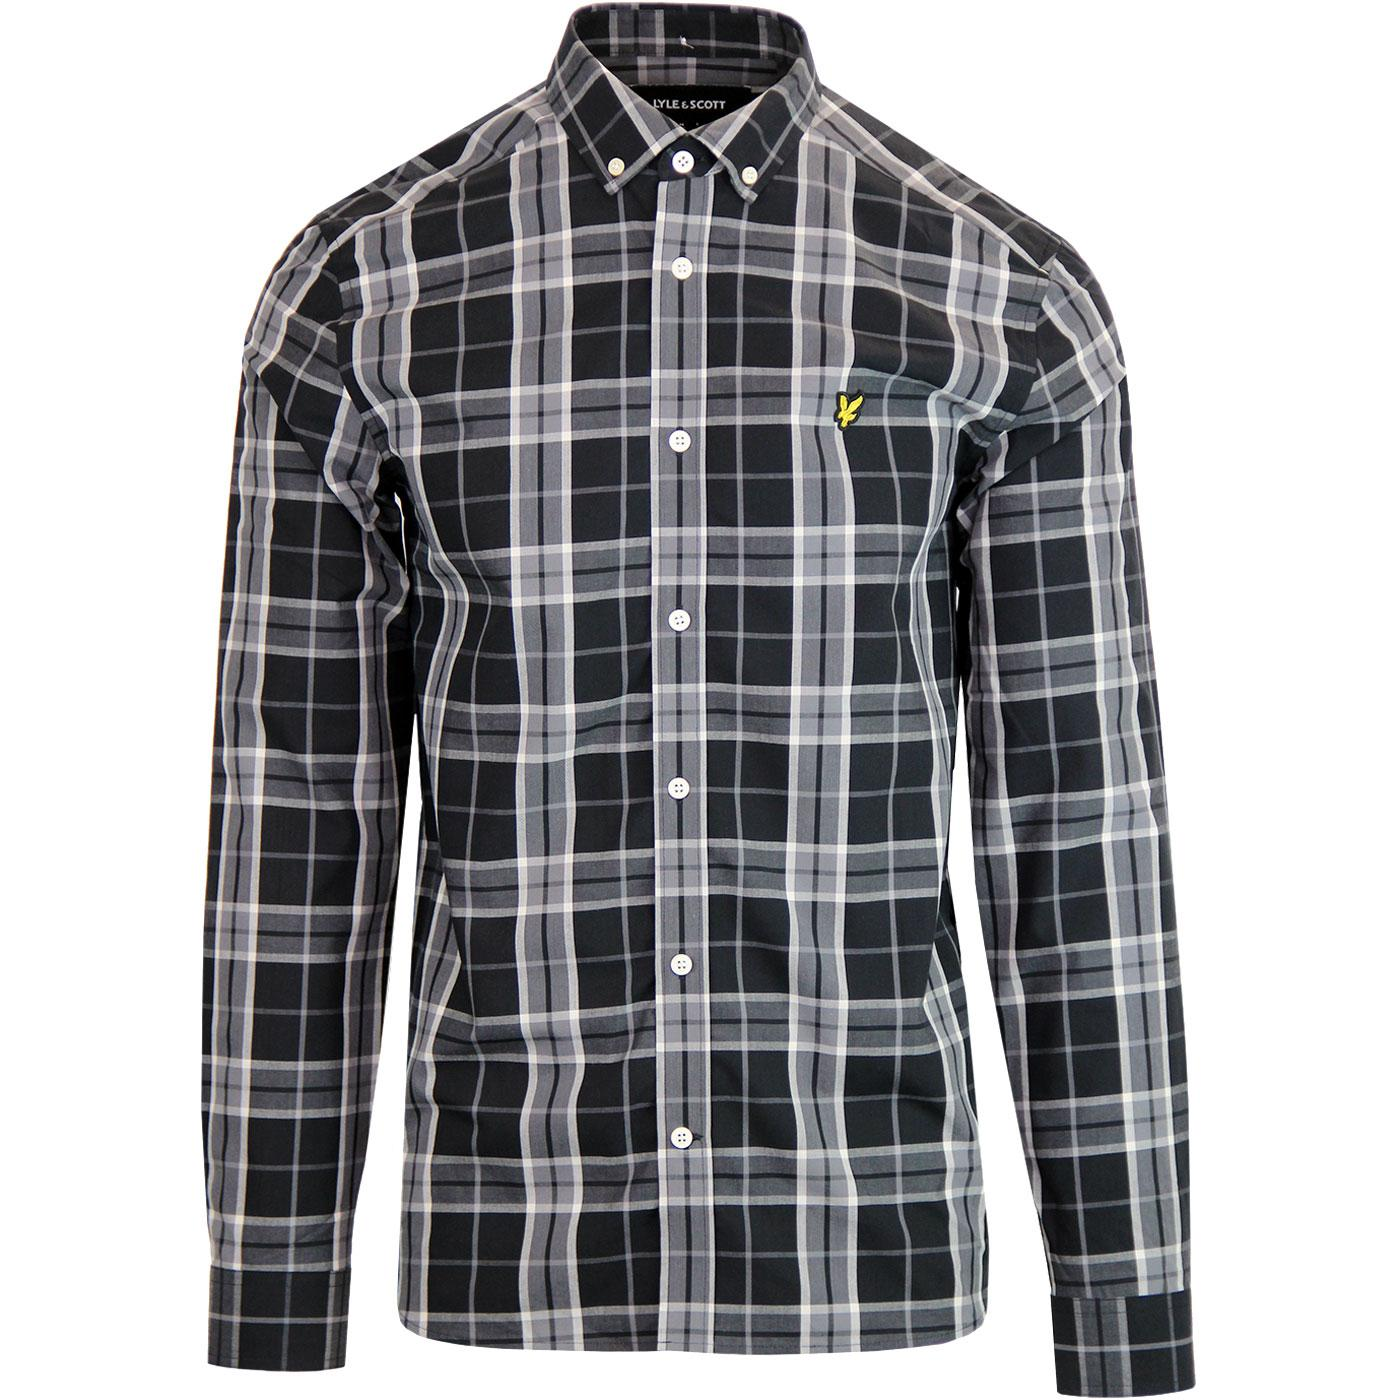 LYLE & SCOTT Retro Poplin Check Button Down Shirt